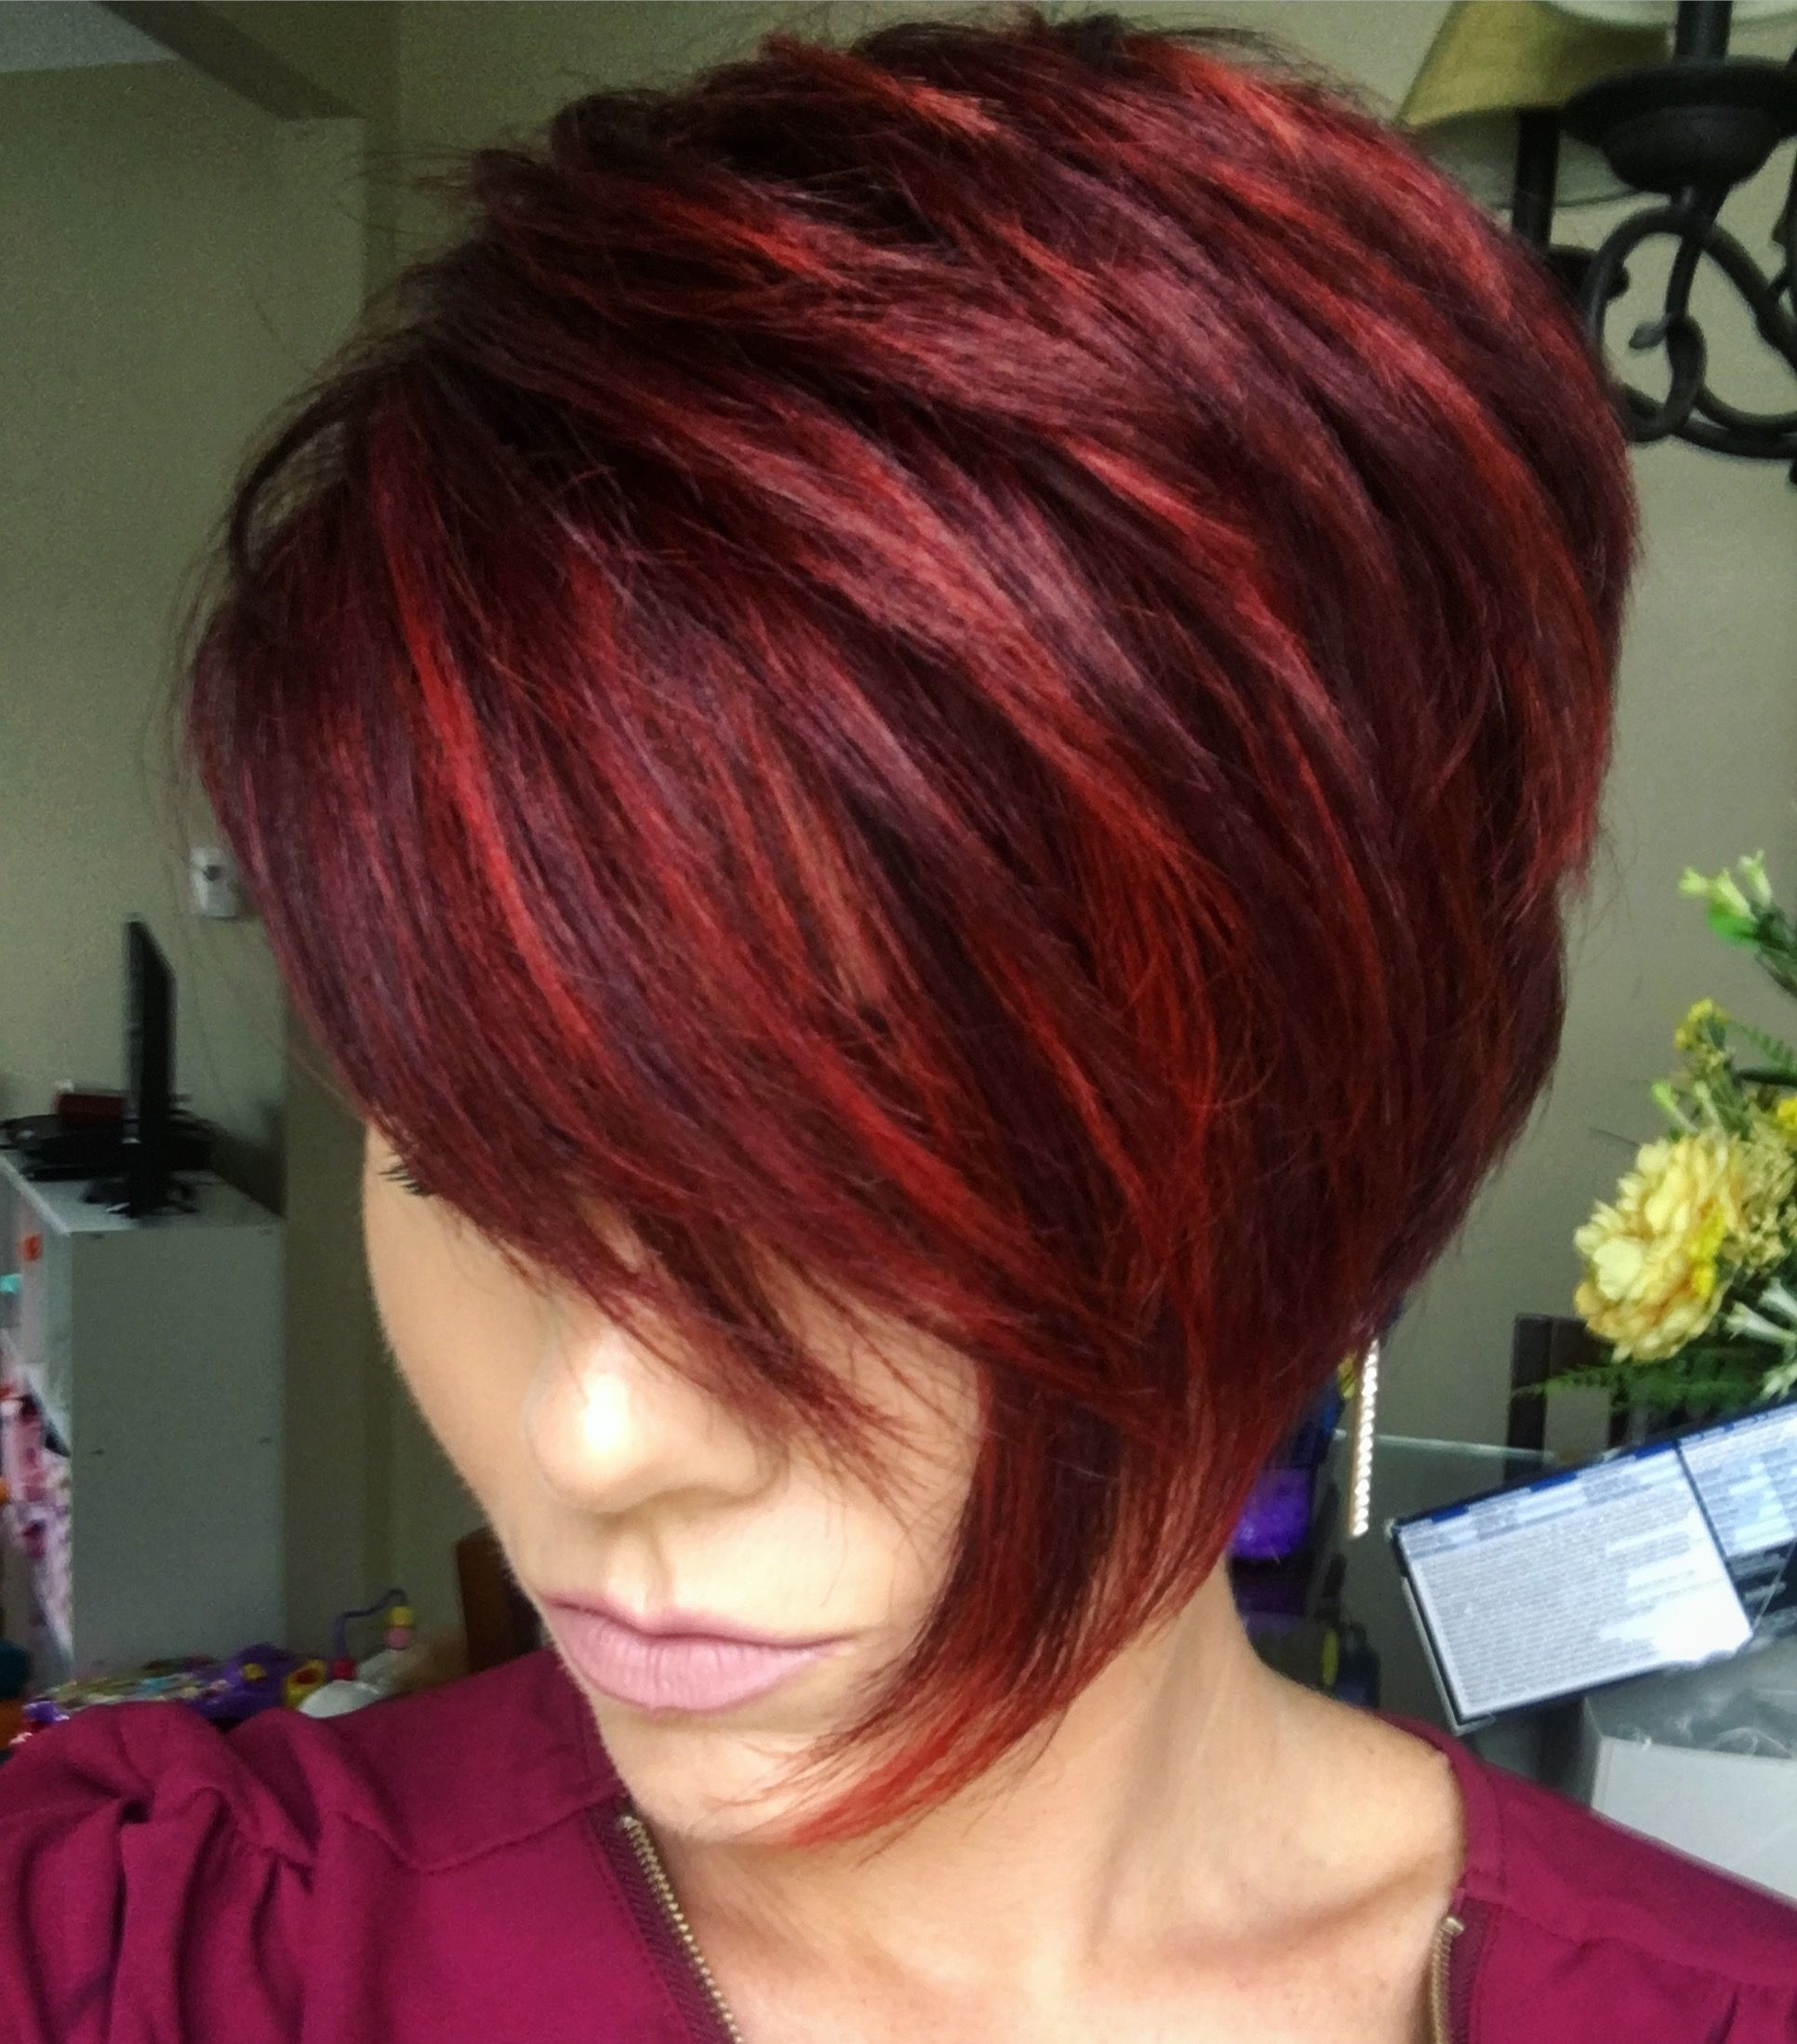 pin on hairstyles/inspiration